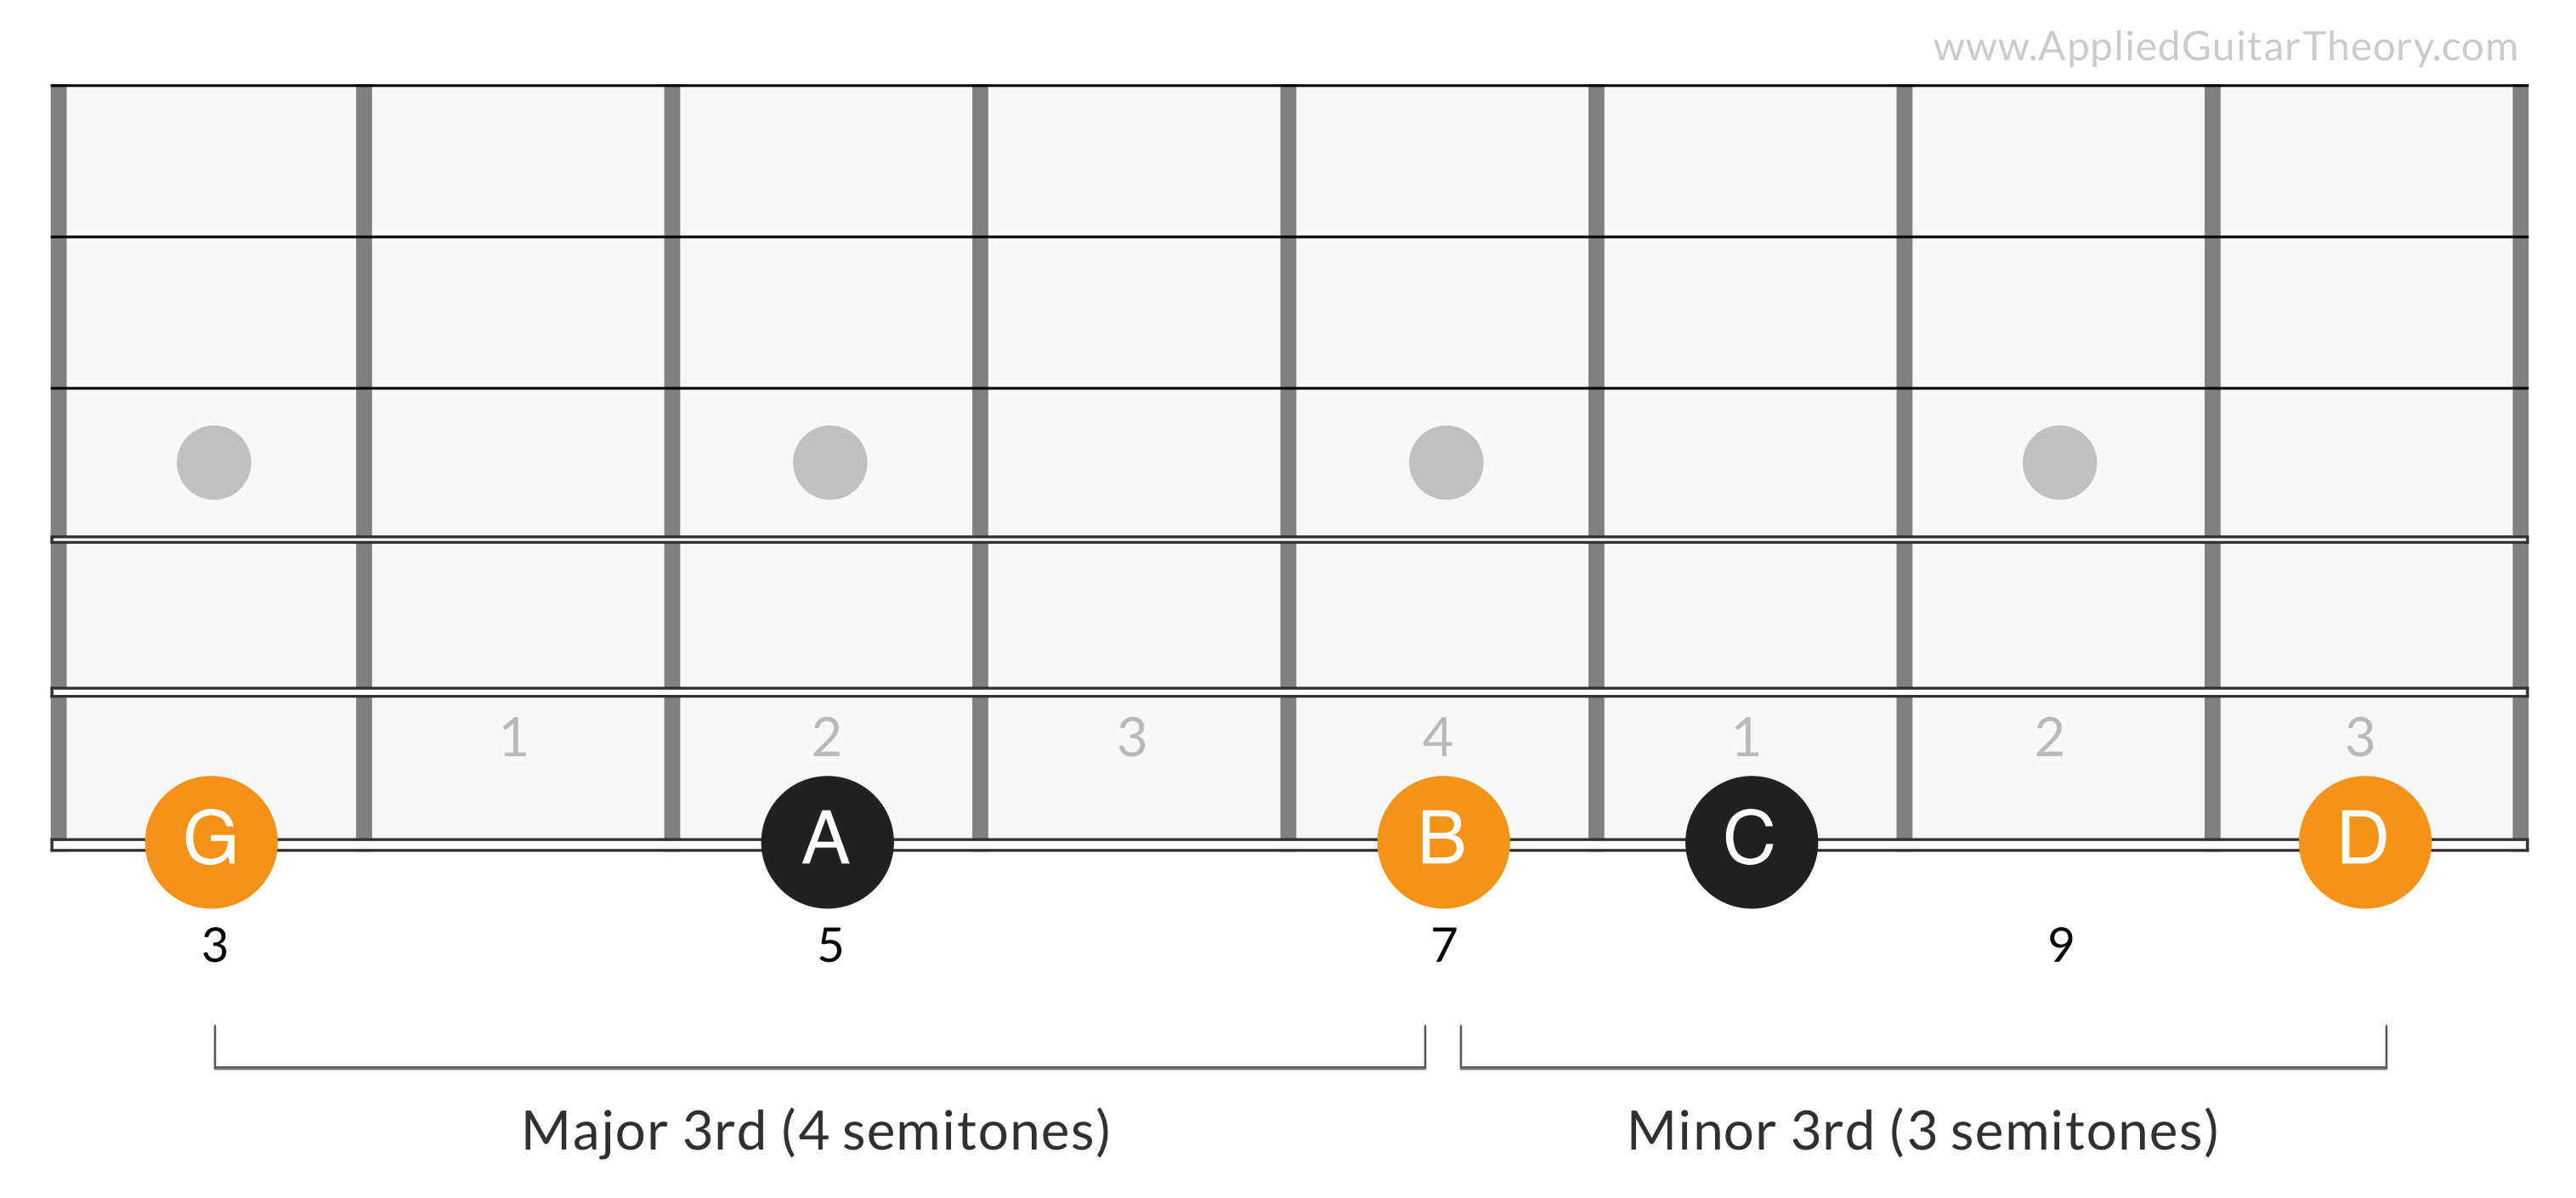 G Major Triad 1st Degree - G B D